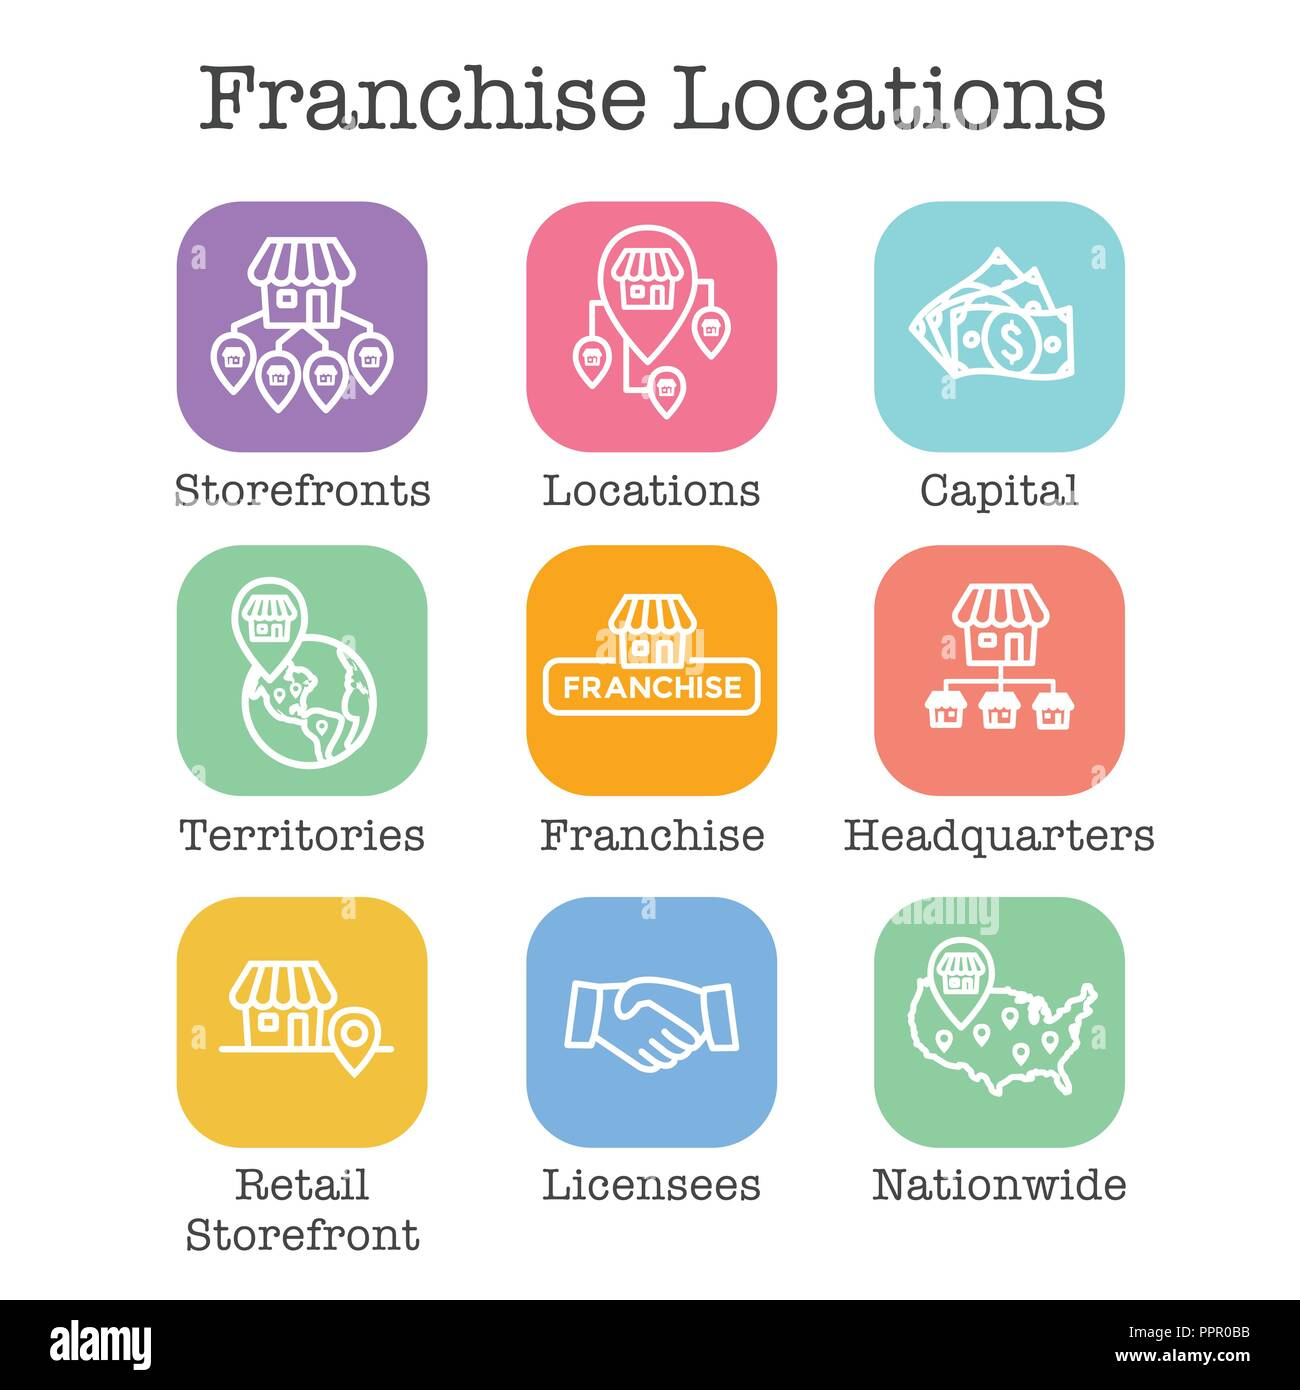 Franchise Icon Set w Home Office, corporate Headquarters and Franchisee Icon Images - Stock Image